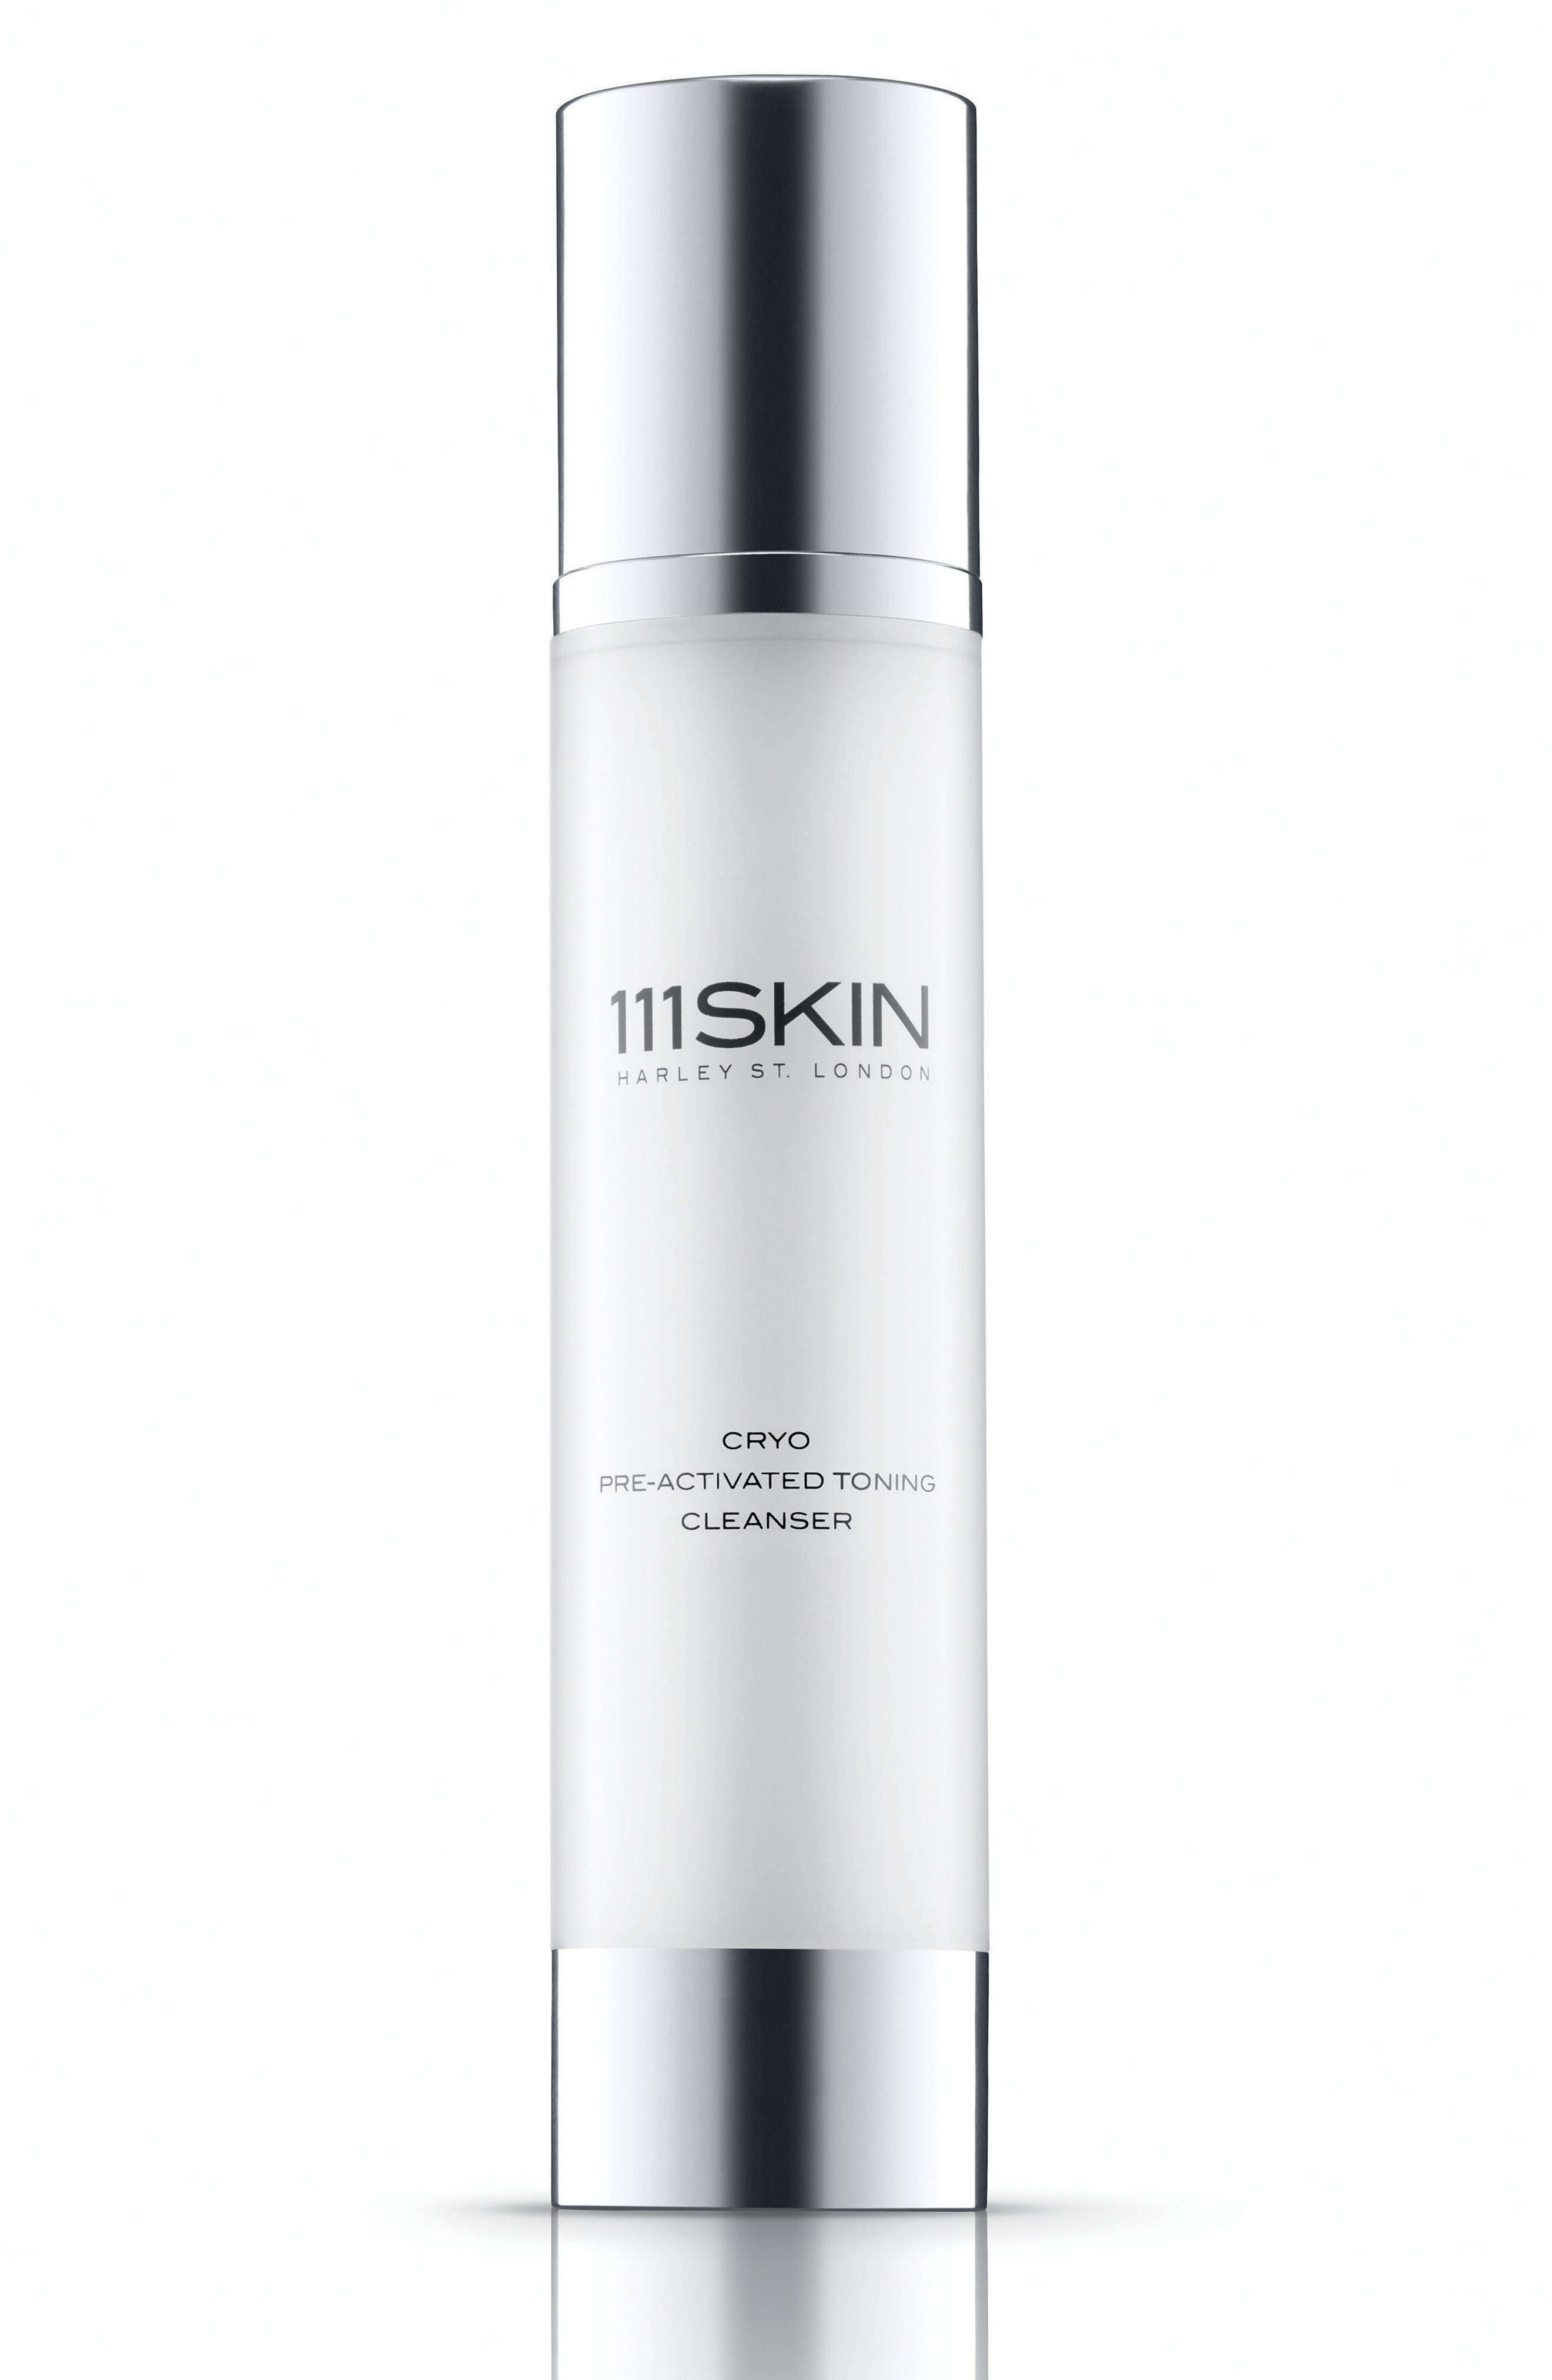 Alternate Image 1 Selected - SPACE.NK.apothecary 111SKIN Cryo Pre-Activated Toning Cleanser